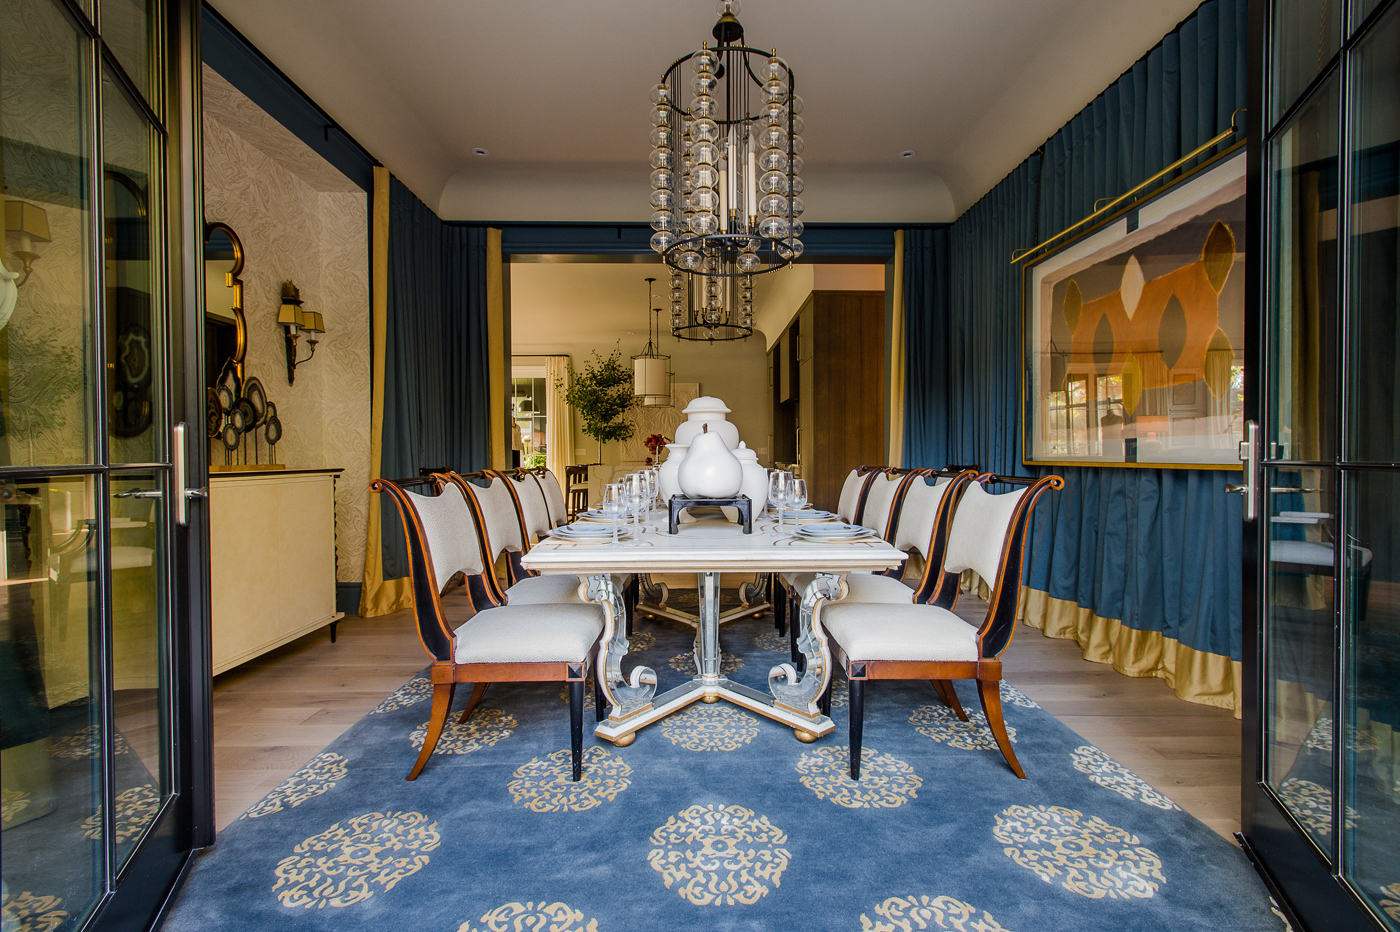 Maison Jansen-designed dining table with Biedermeier style chairs; Paul Ferrante pendant lights | Savage Interior Design